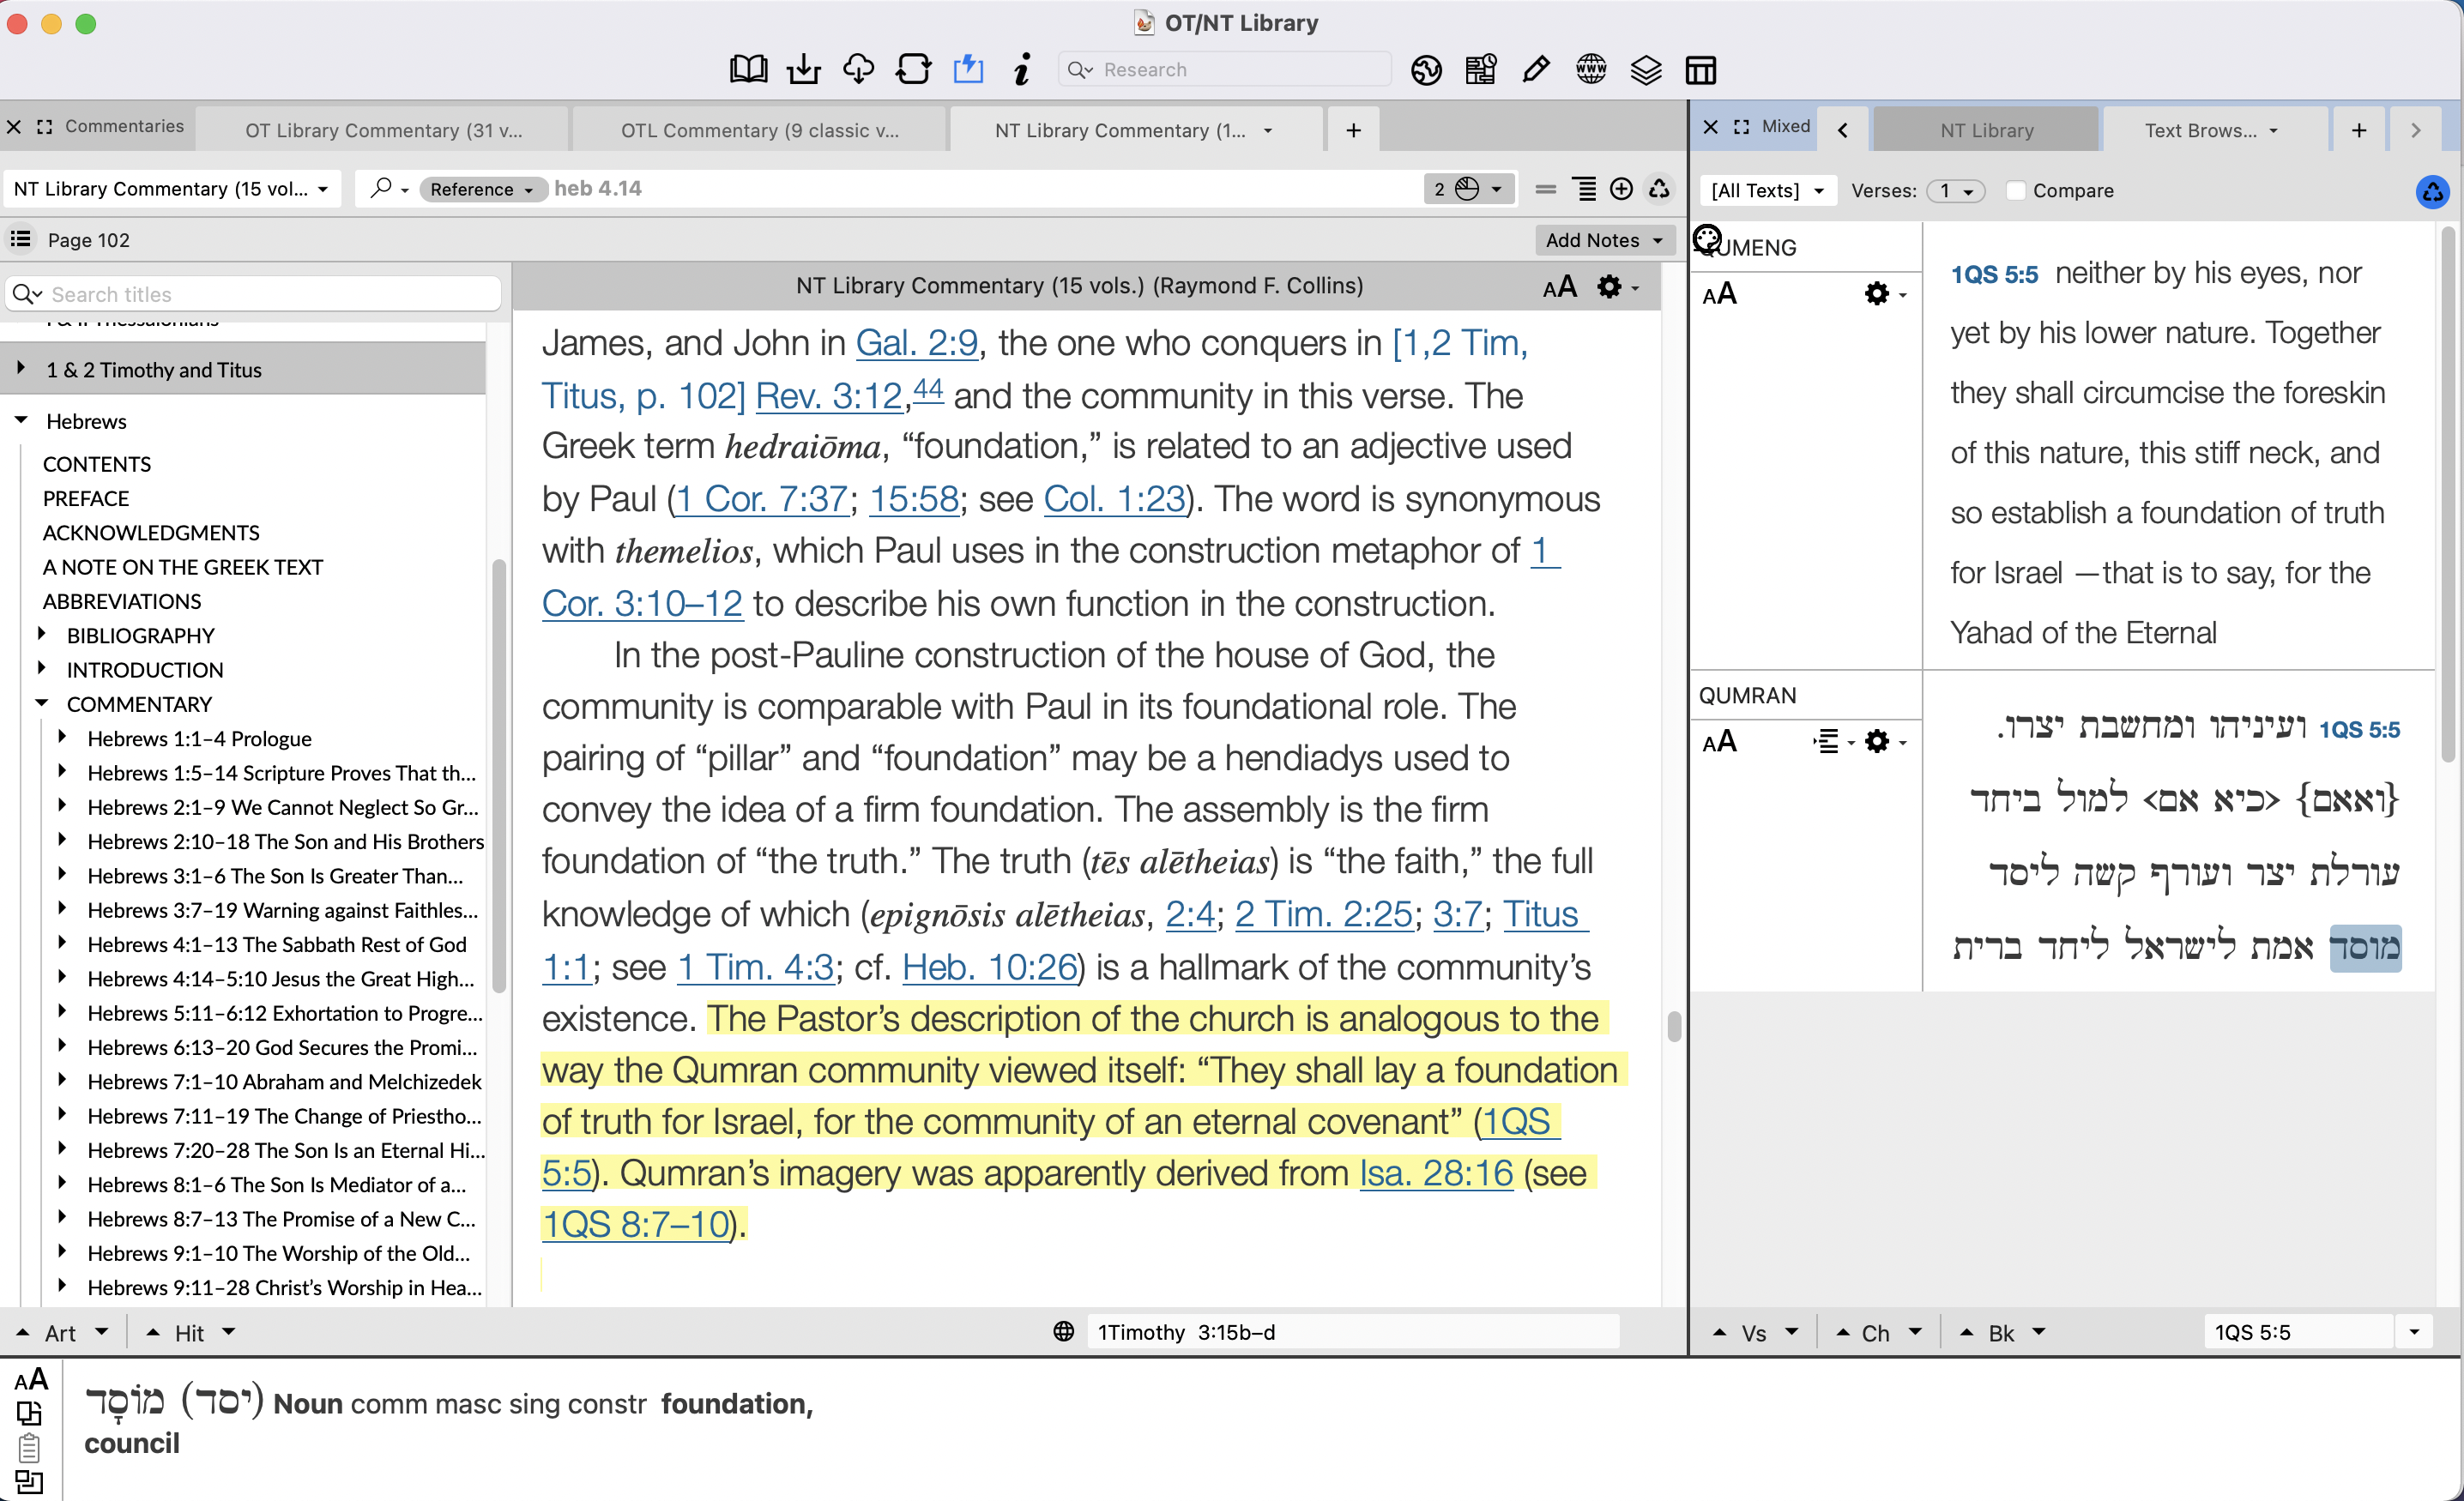 DSS references via the Text Browser